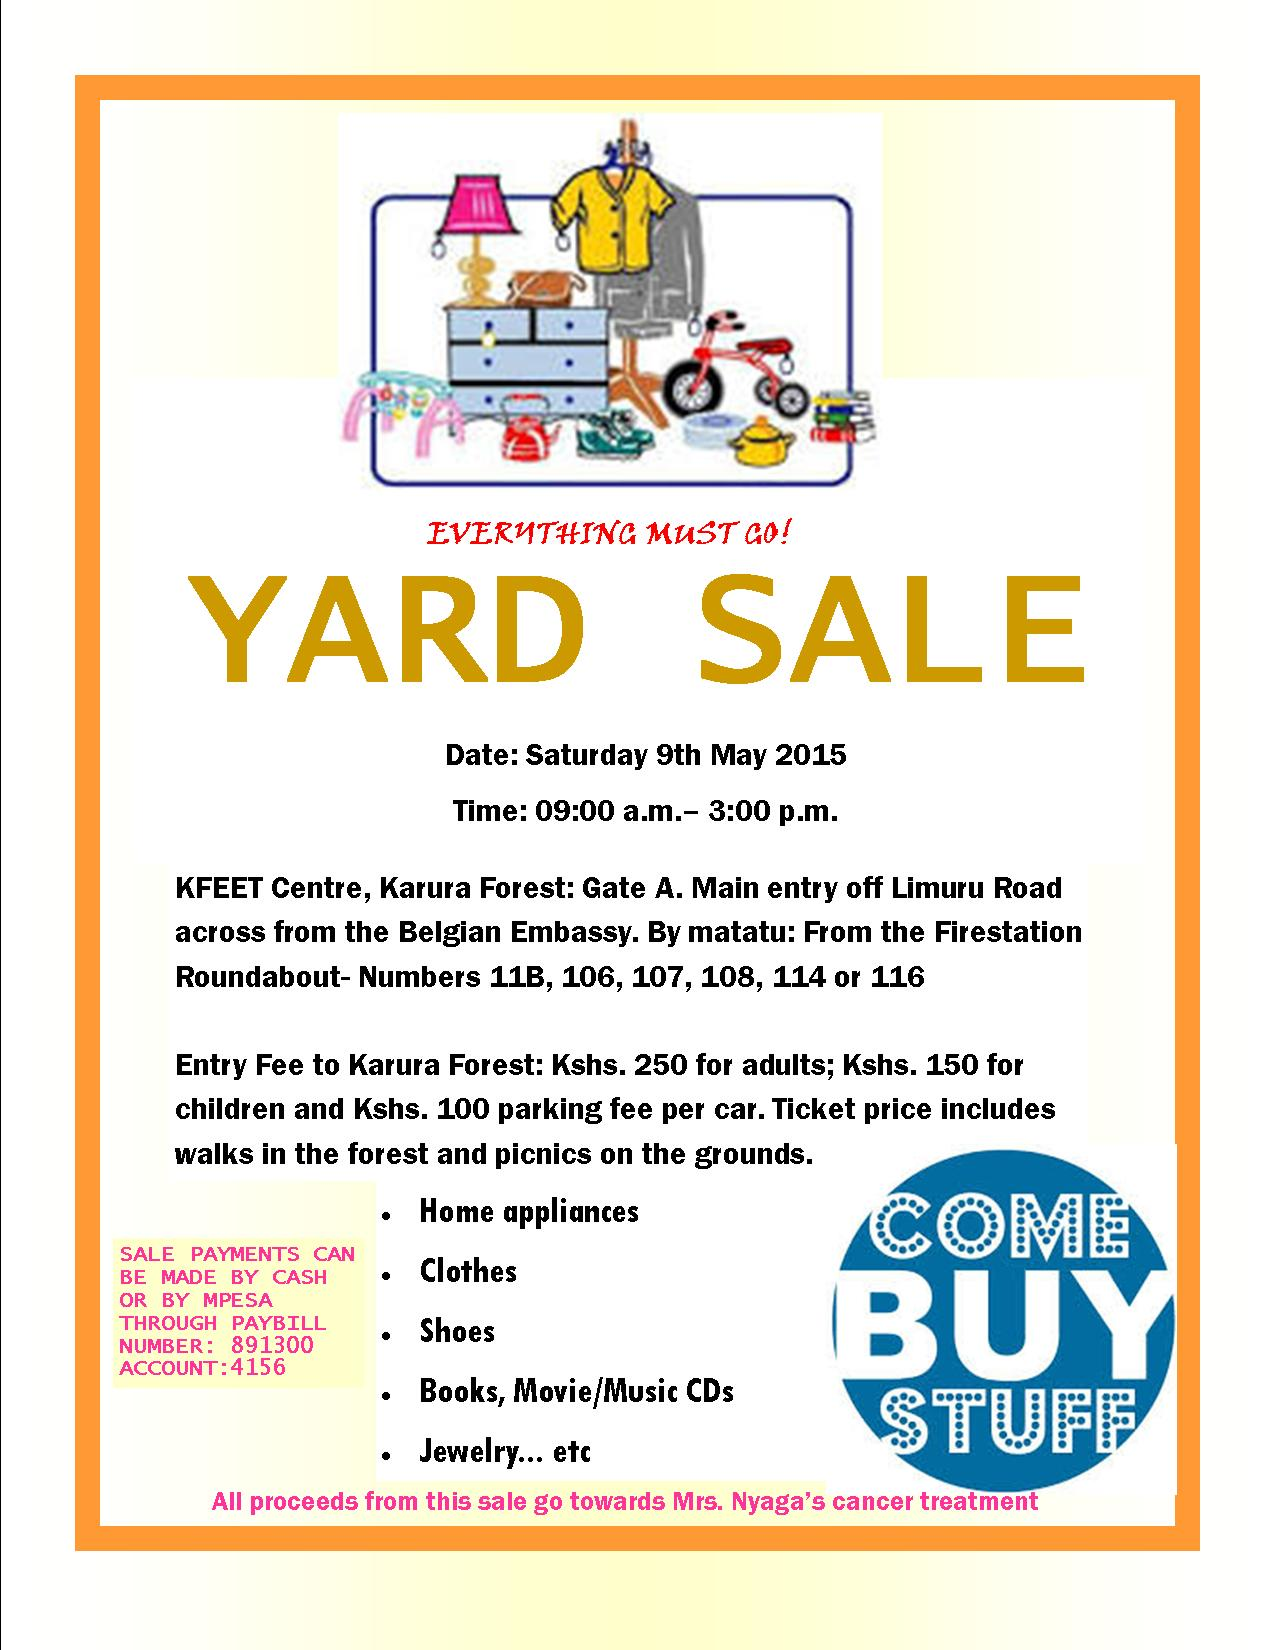 Yard Sale Invite – 9th May 2015 at Karura Forest (KEFET ...